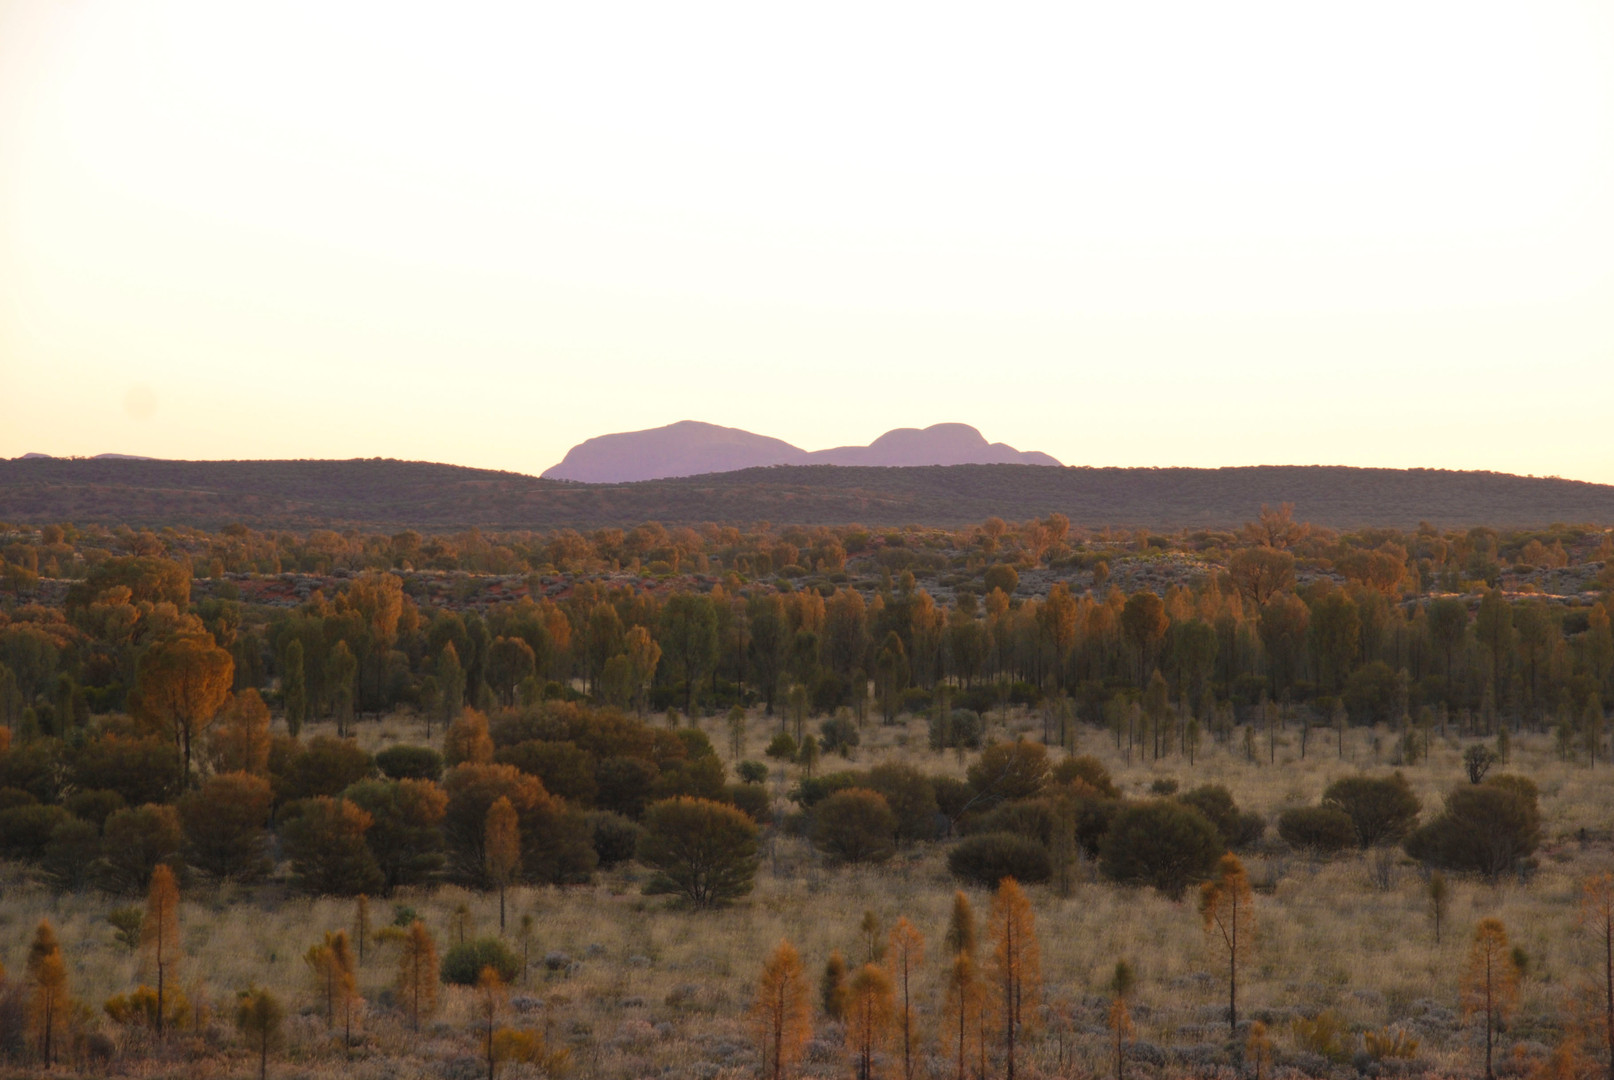 The Kata-Tjuta